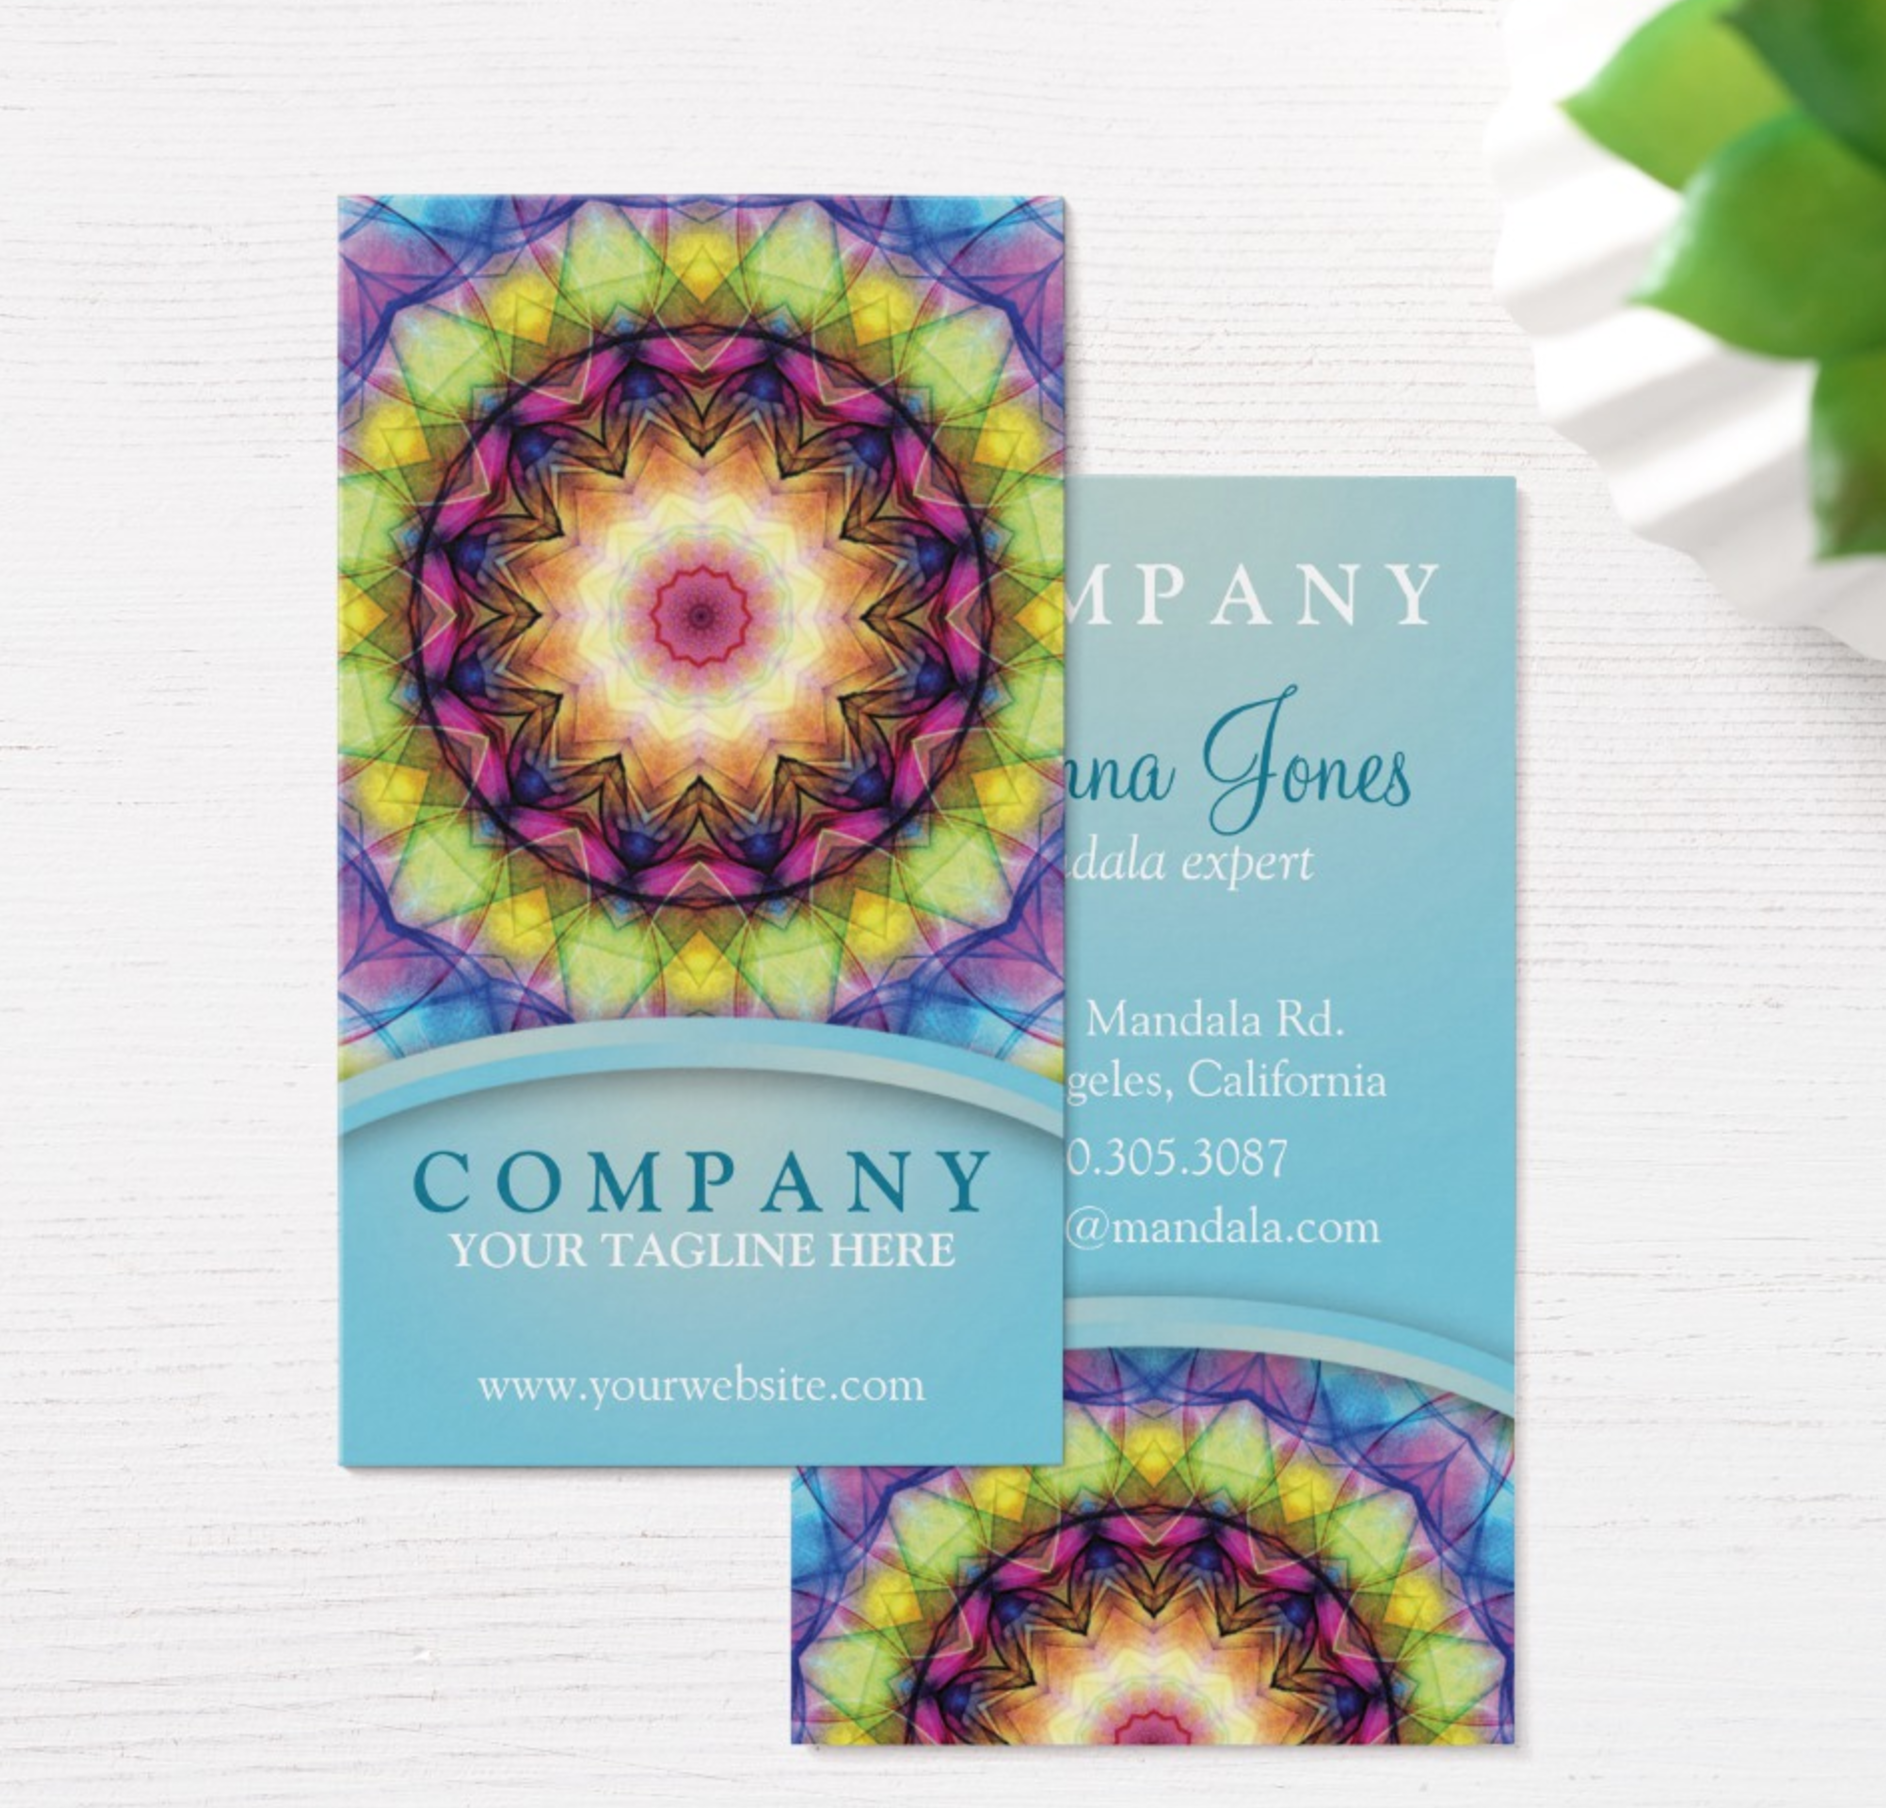 Rainbow glass mandala business cards zandiepants rainbow glass mandala business cards colourmoves